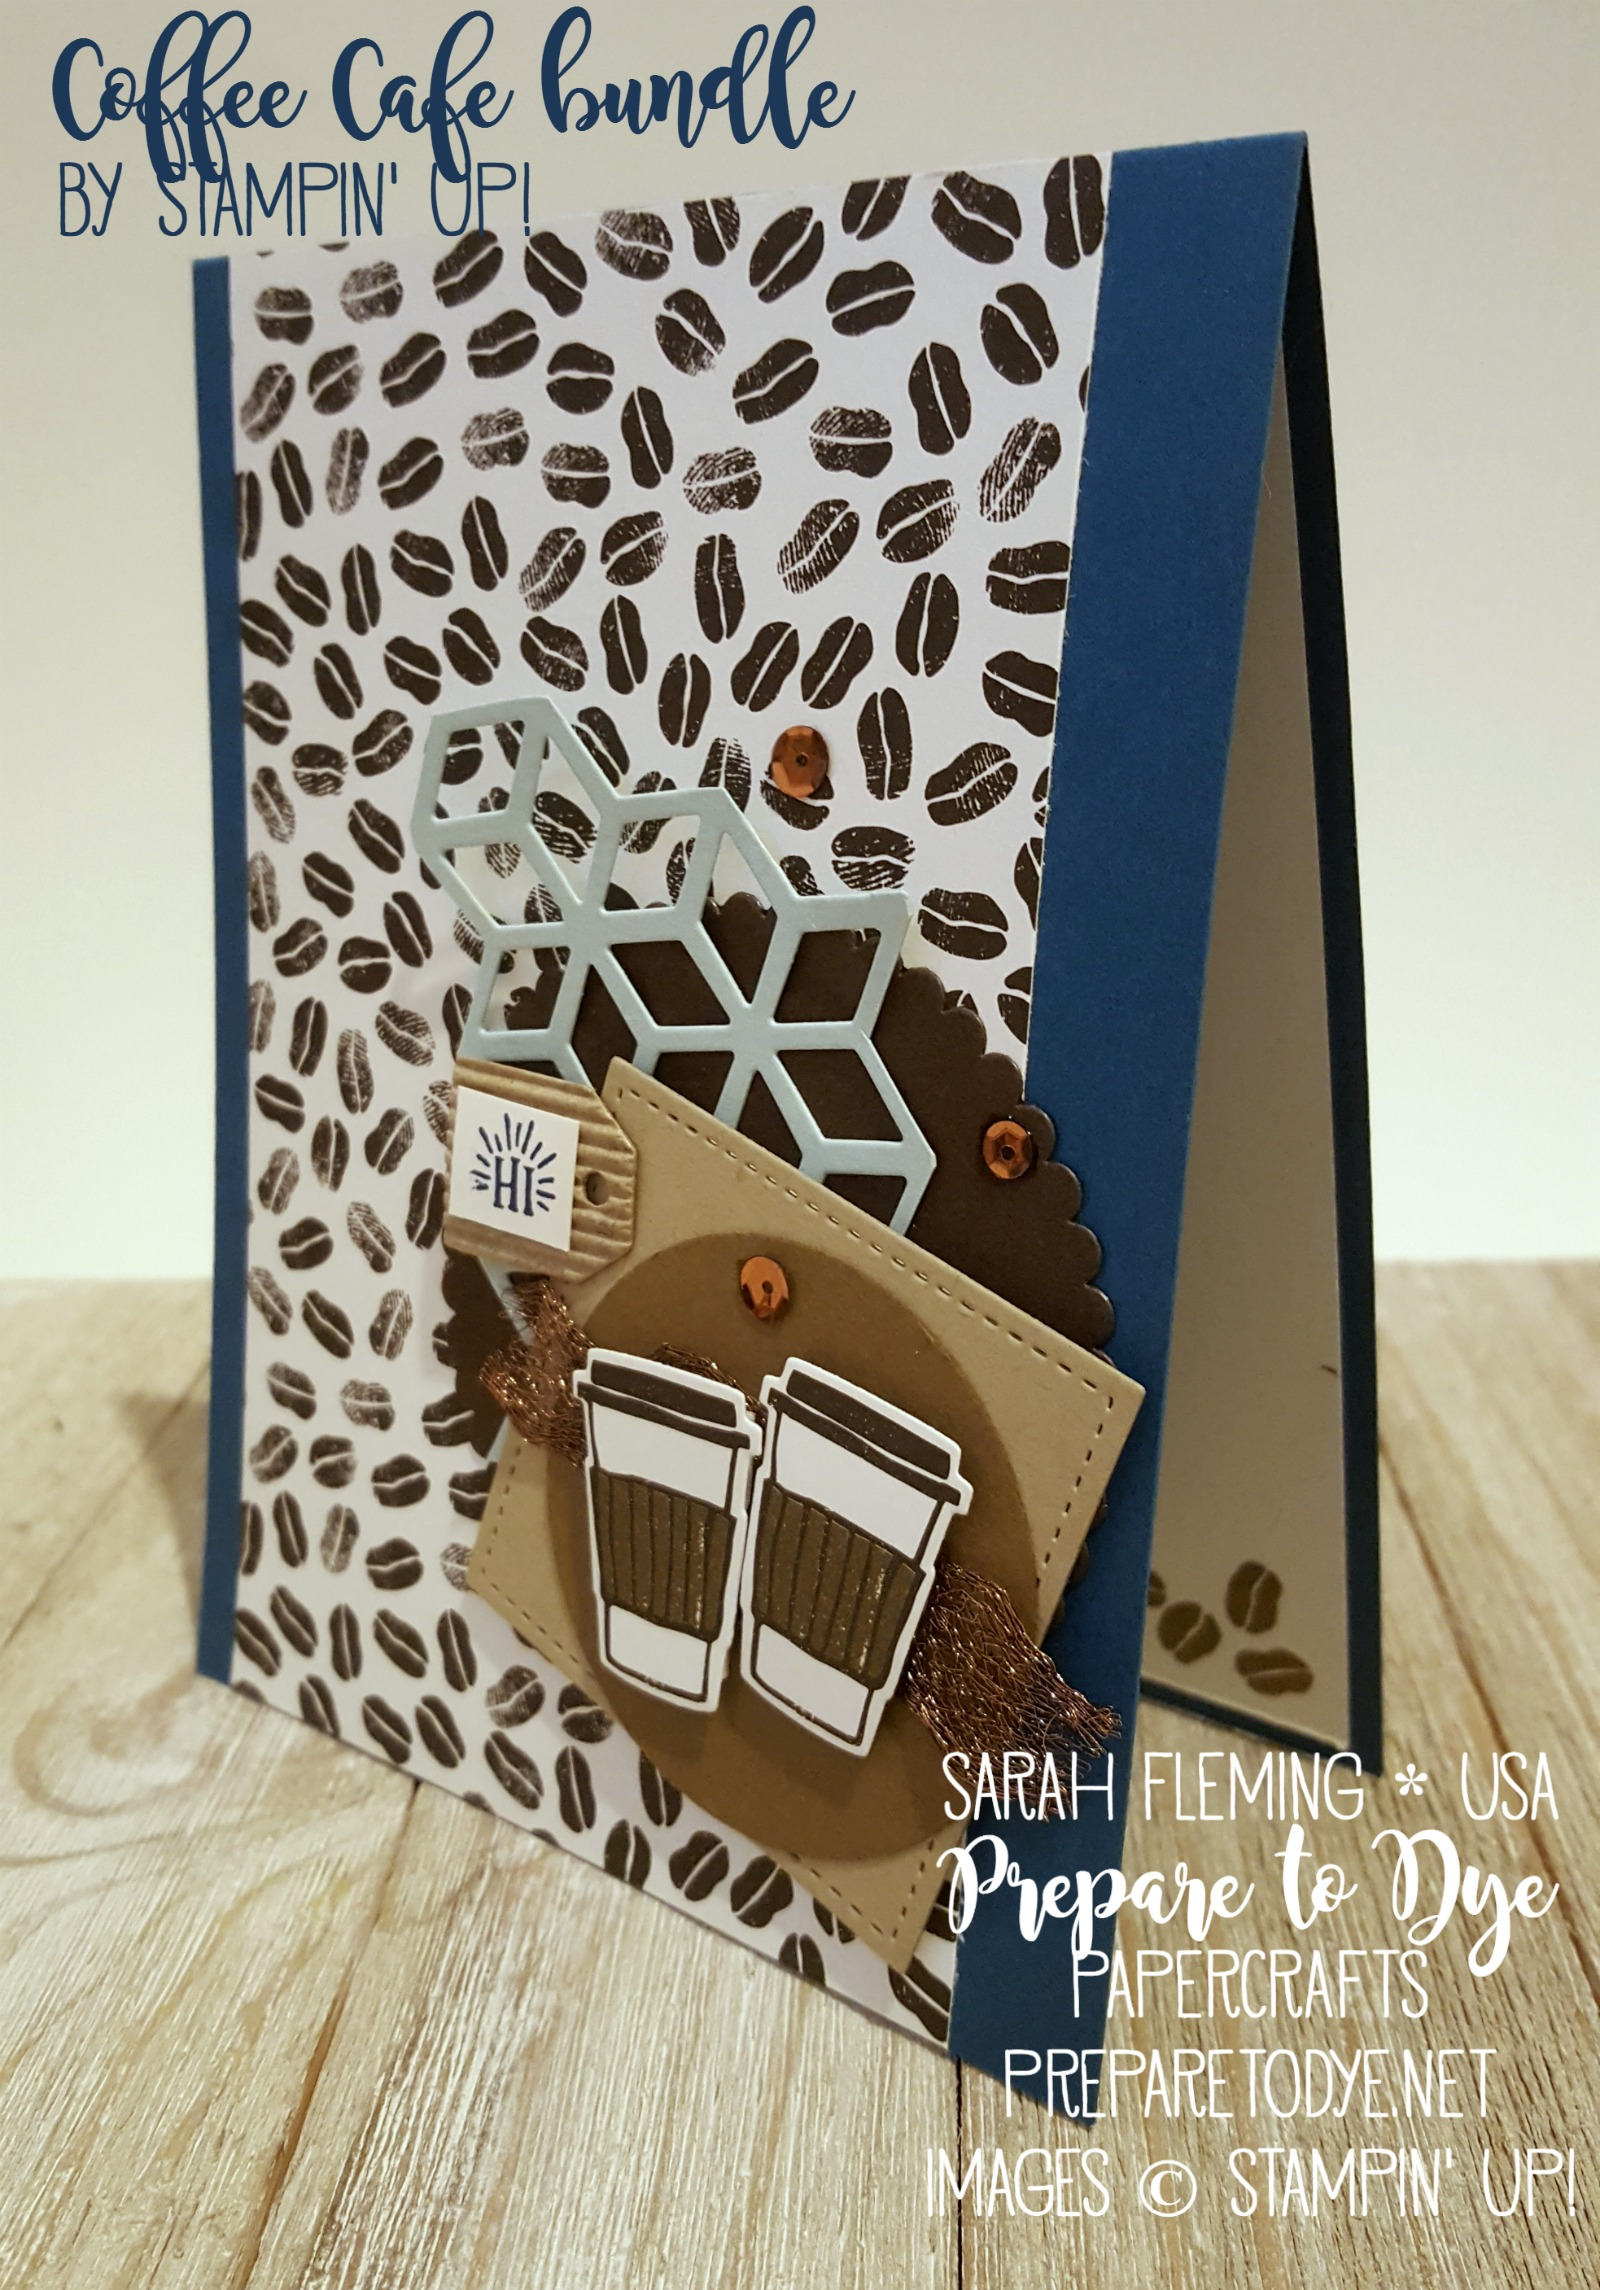 Stampin' Up! Coffee Cafe bundle with Coffee Cups framelits and Coffee Break paper, with Eclectic Layers thinlits - Ink & Inspiration Blog Hop - Sarah Fleming - Prepare to Dye Papercrafts